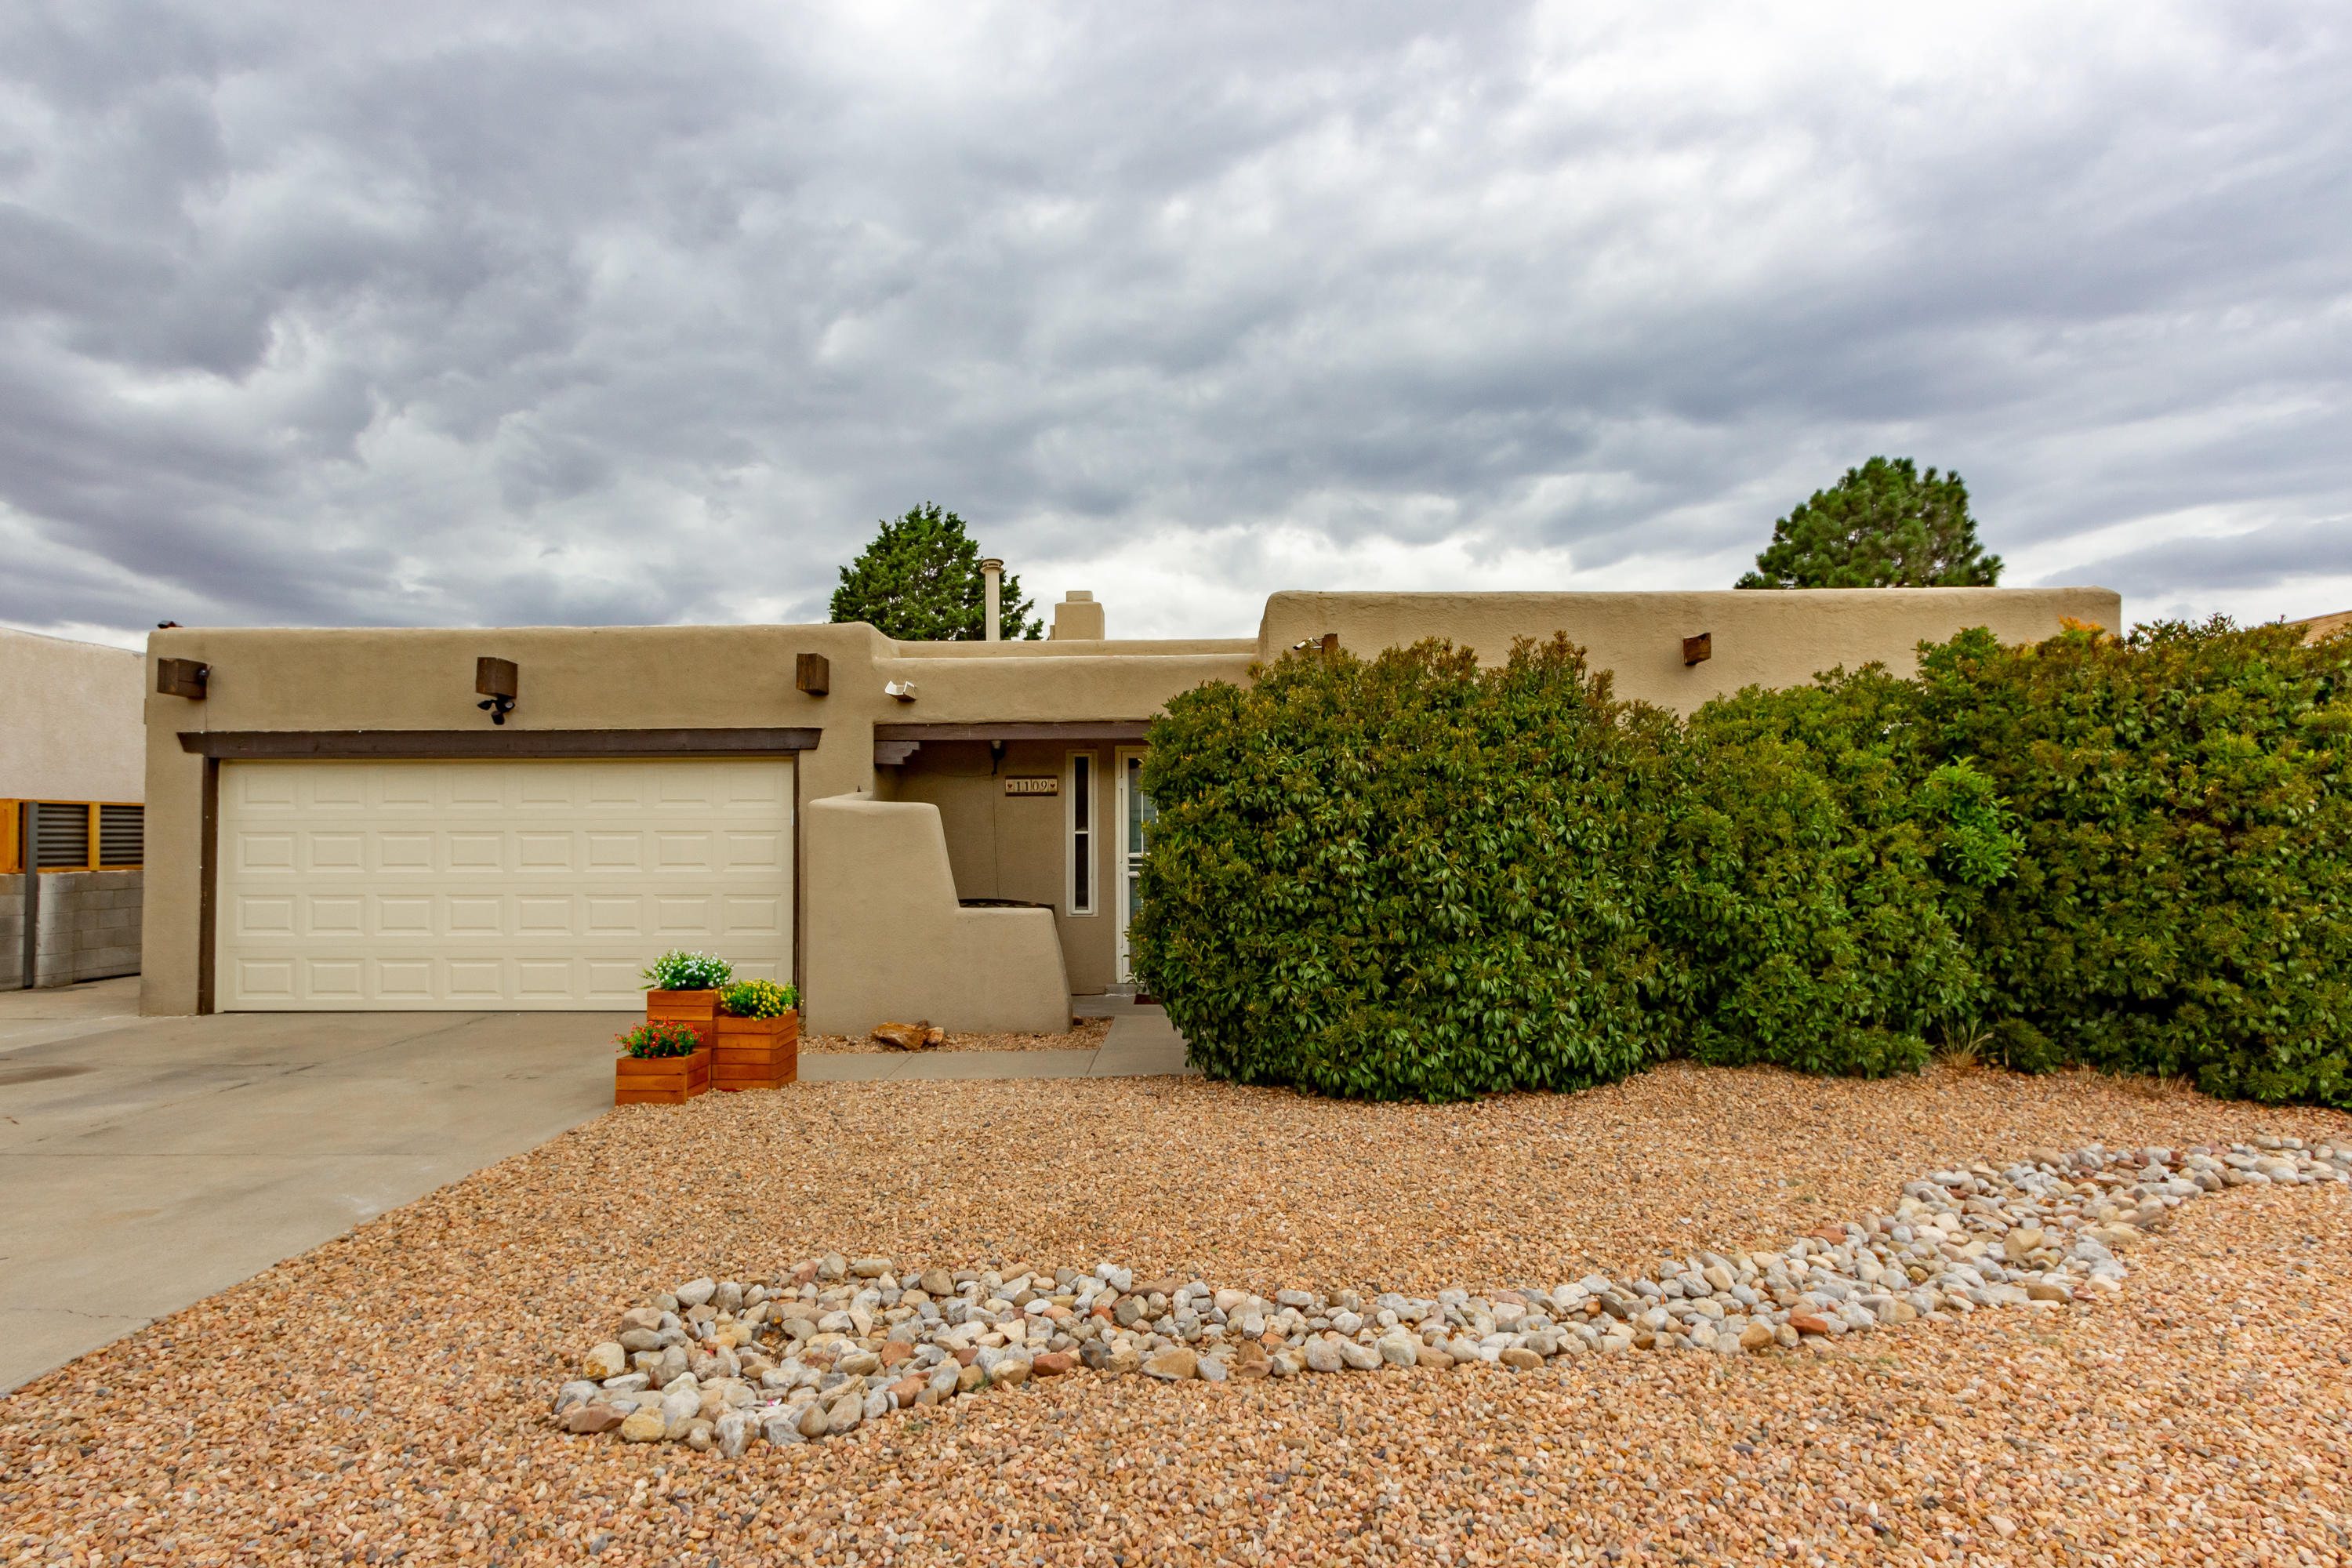 You will feel an abundance of love and care in this home as soon as you drive up.  Second owners have made this property shine. Newer rubber membrane roof! refrigertor air with smart thermostat. Updated flooring, new carpet,  and fresh paint inside and out are a few of the recent updates. Backyard access with plently of room to park an RV . If you're looking for a PRIVATE green backyard oasis look no further. New decking on sun exposed area making this space ready to entertain. Set up a showing before it's gone. Open House Saturday 1-4pm!